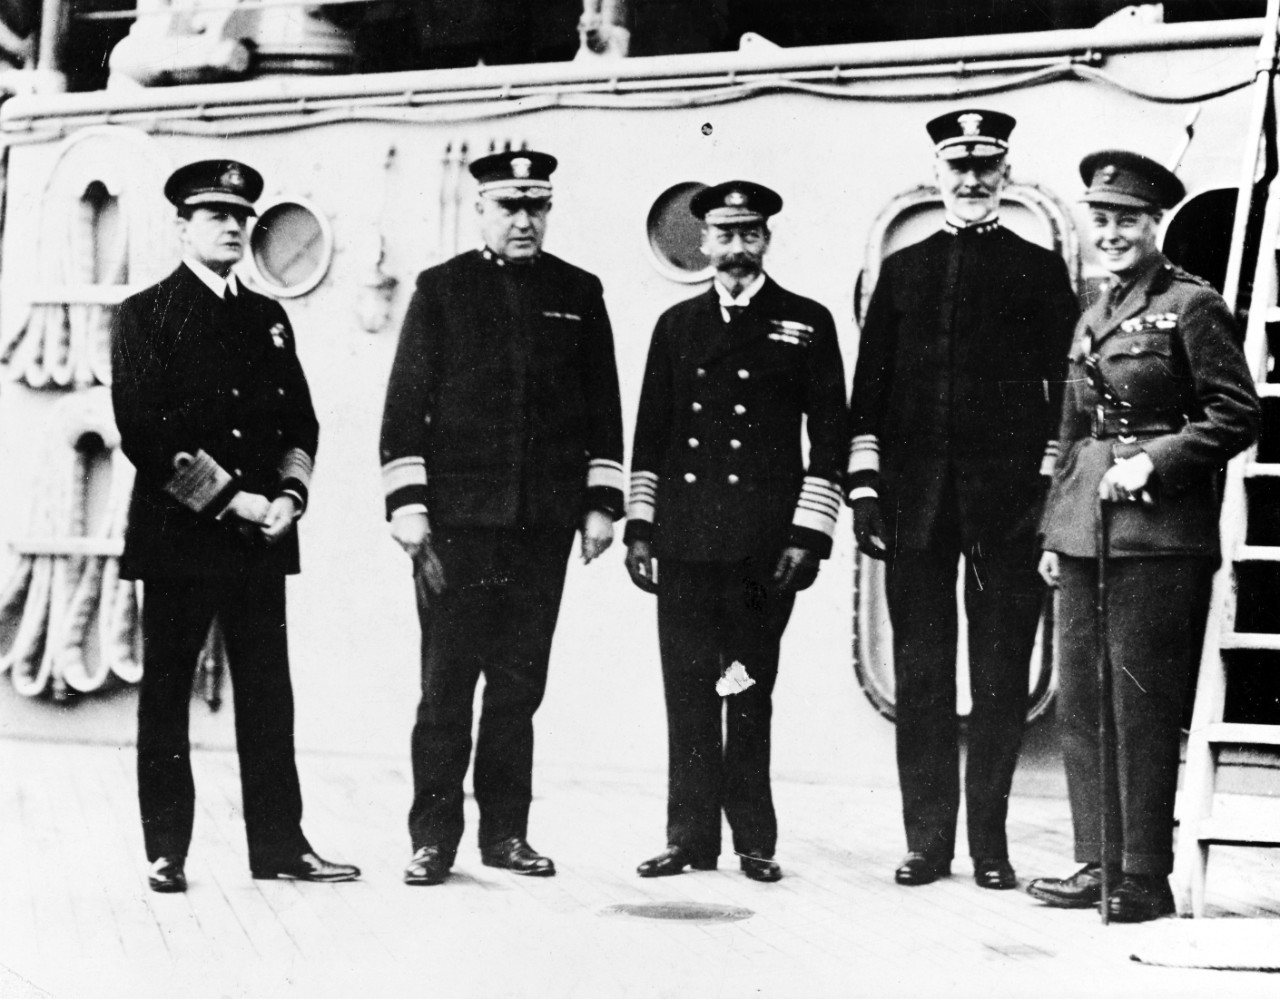 Admiral Earl Beatty, R.N., Rear Admiral Hugh Rodman, U.S. Navy, King George of England, Vice Admiral William S. Sims, USN, and the Prince of Wales